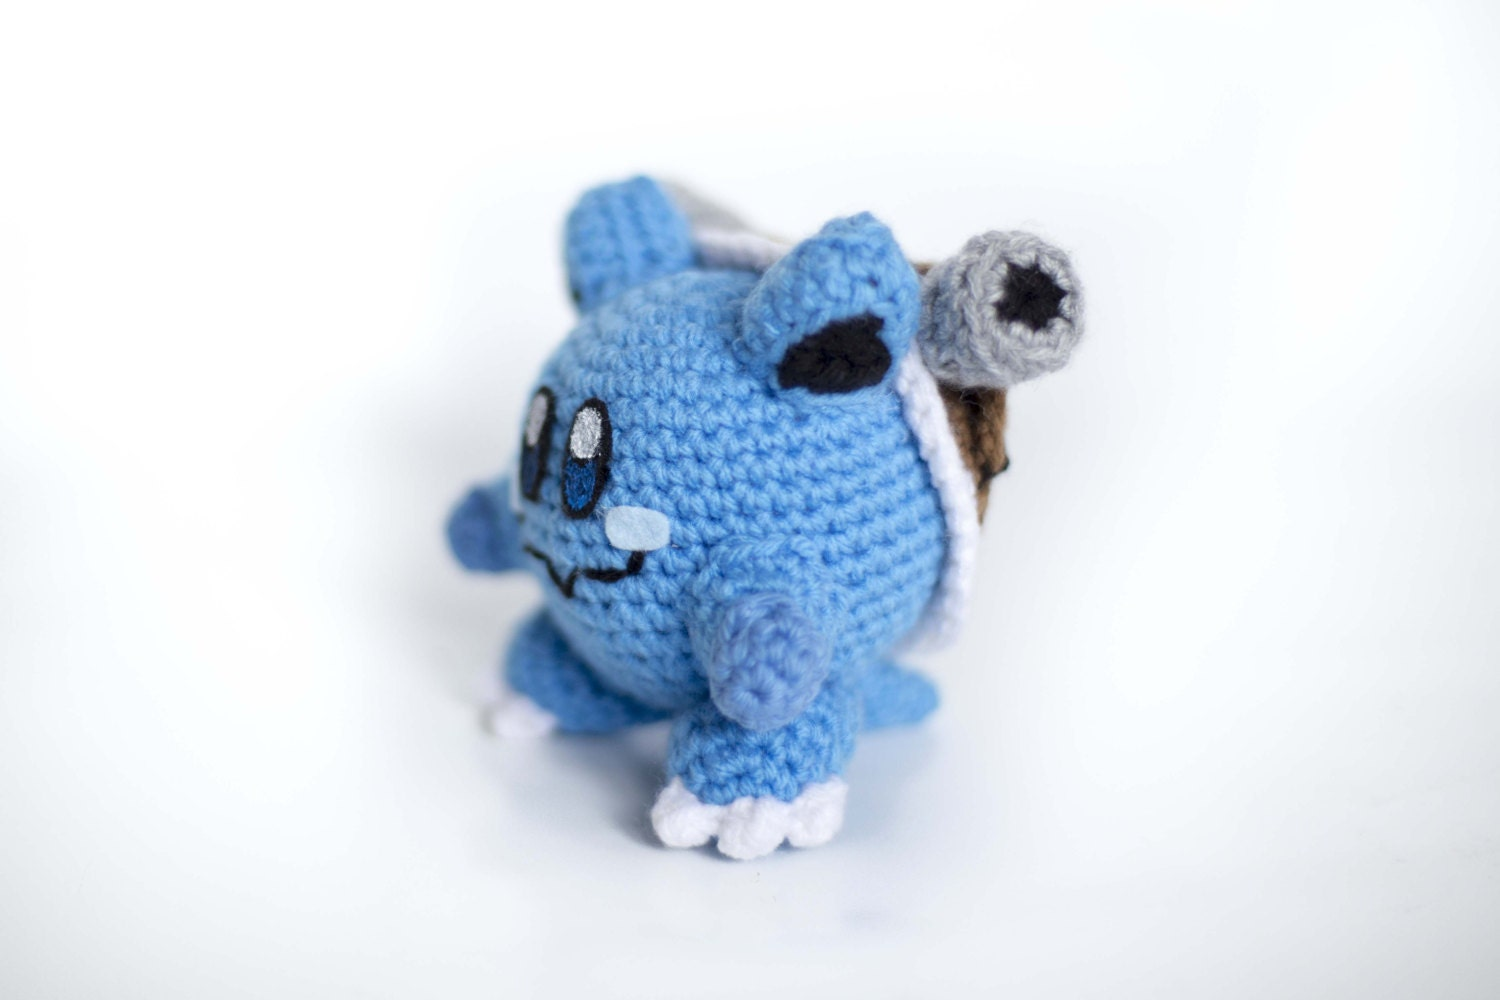 Crochet Blastoise Kirby Amigurumi Made to order